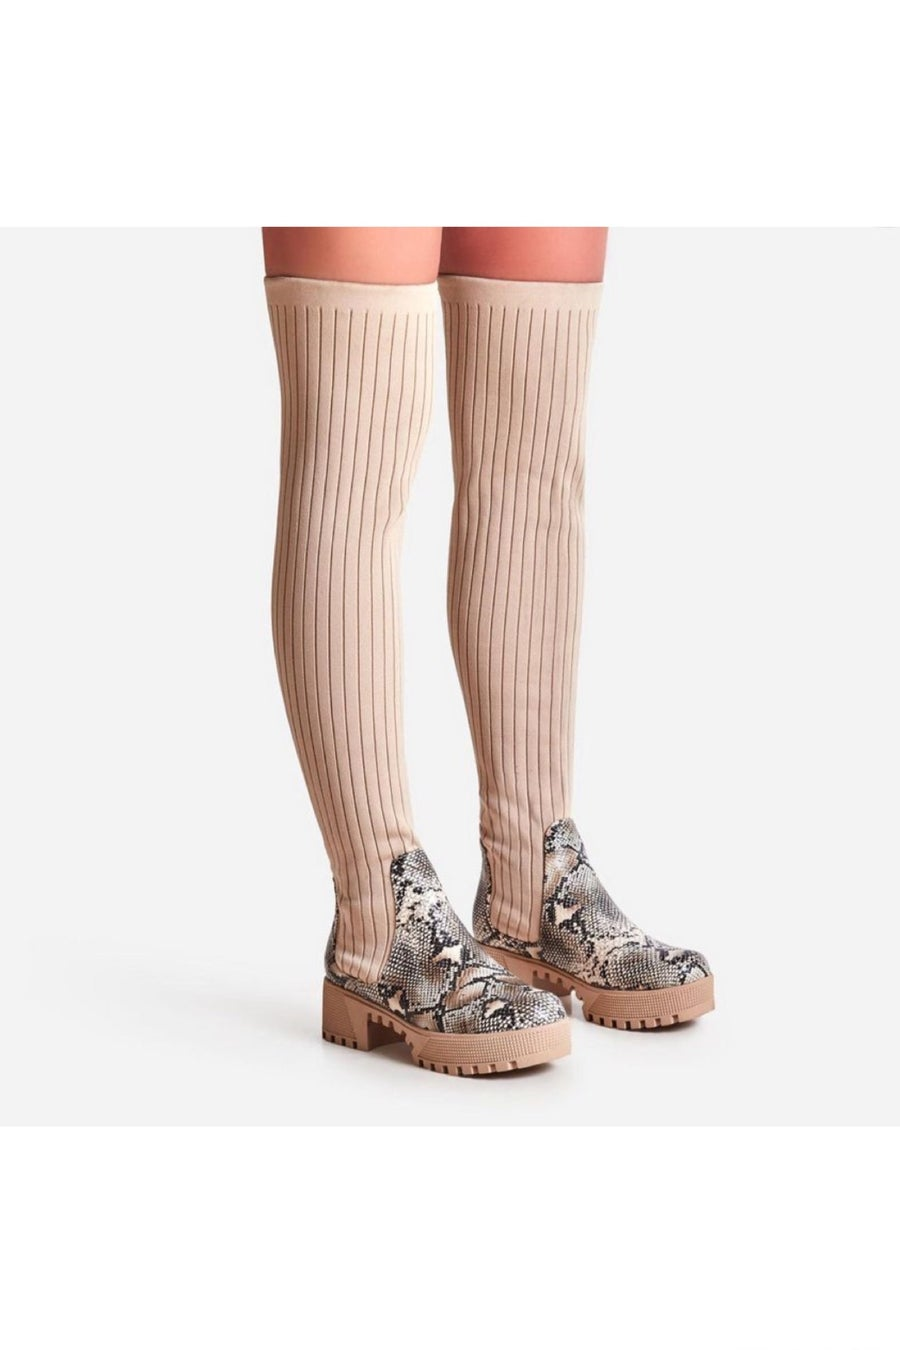 Image of Colorado Knitted Over The Knee Thigh High Long Sock Boot